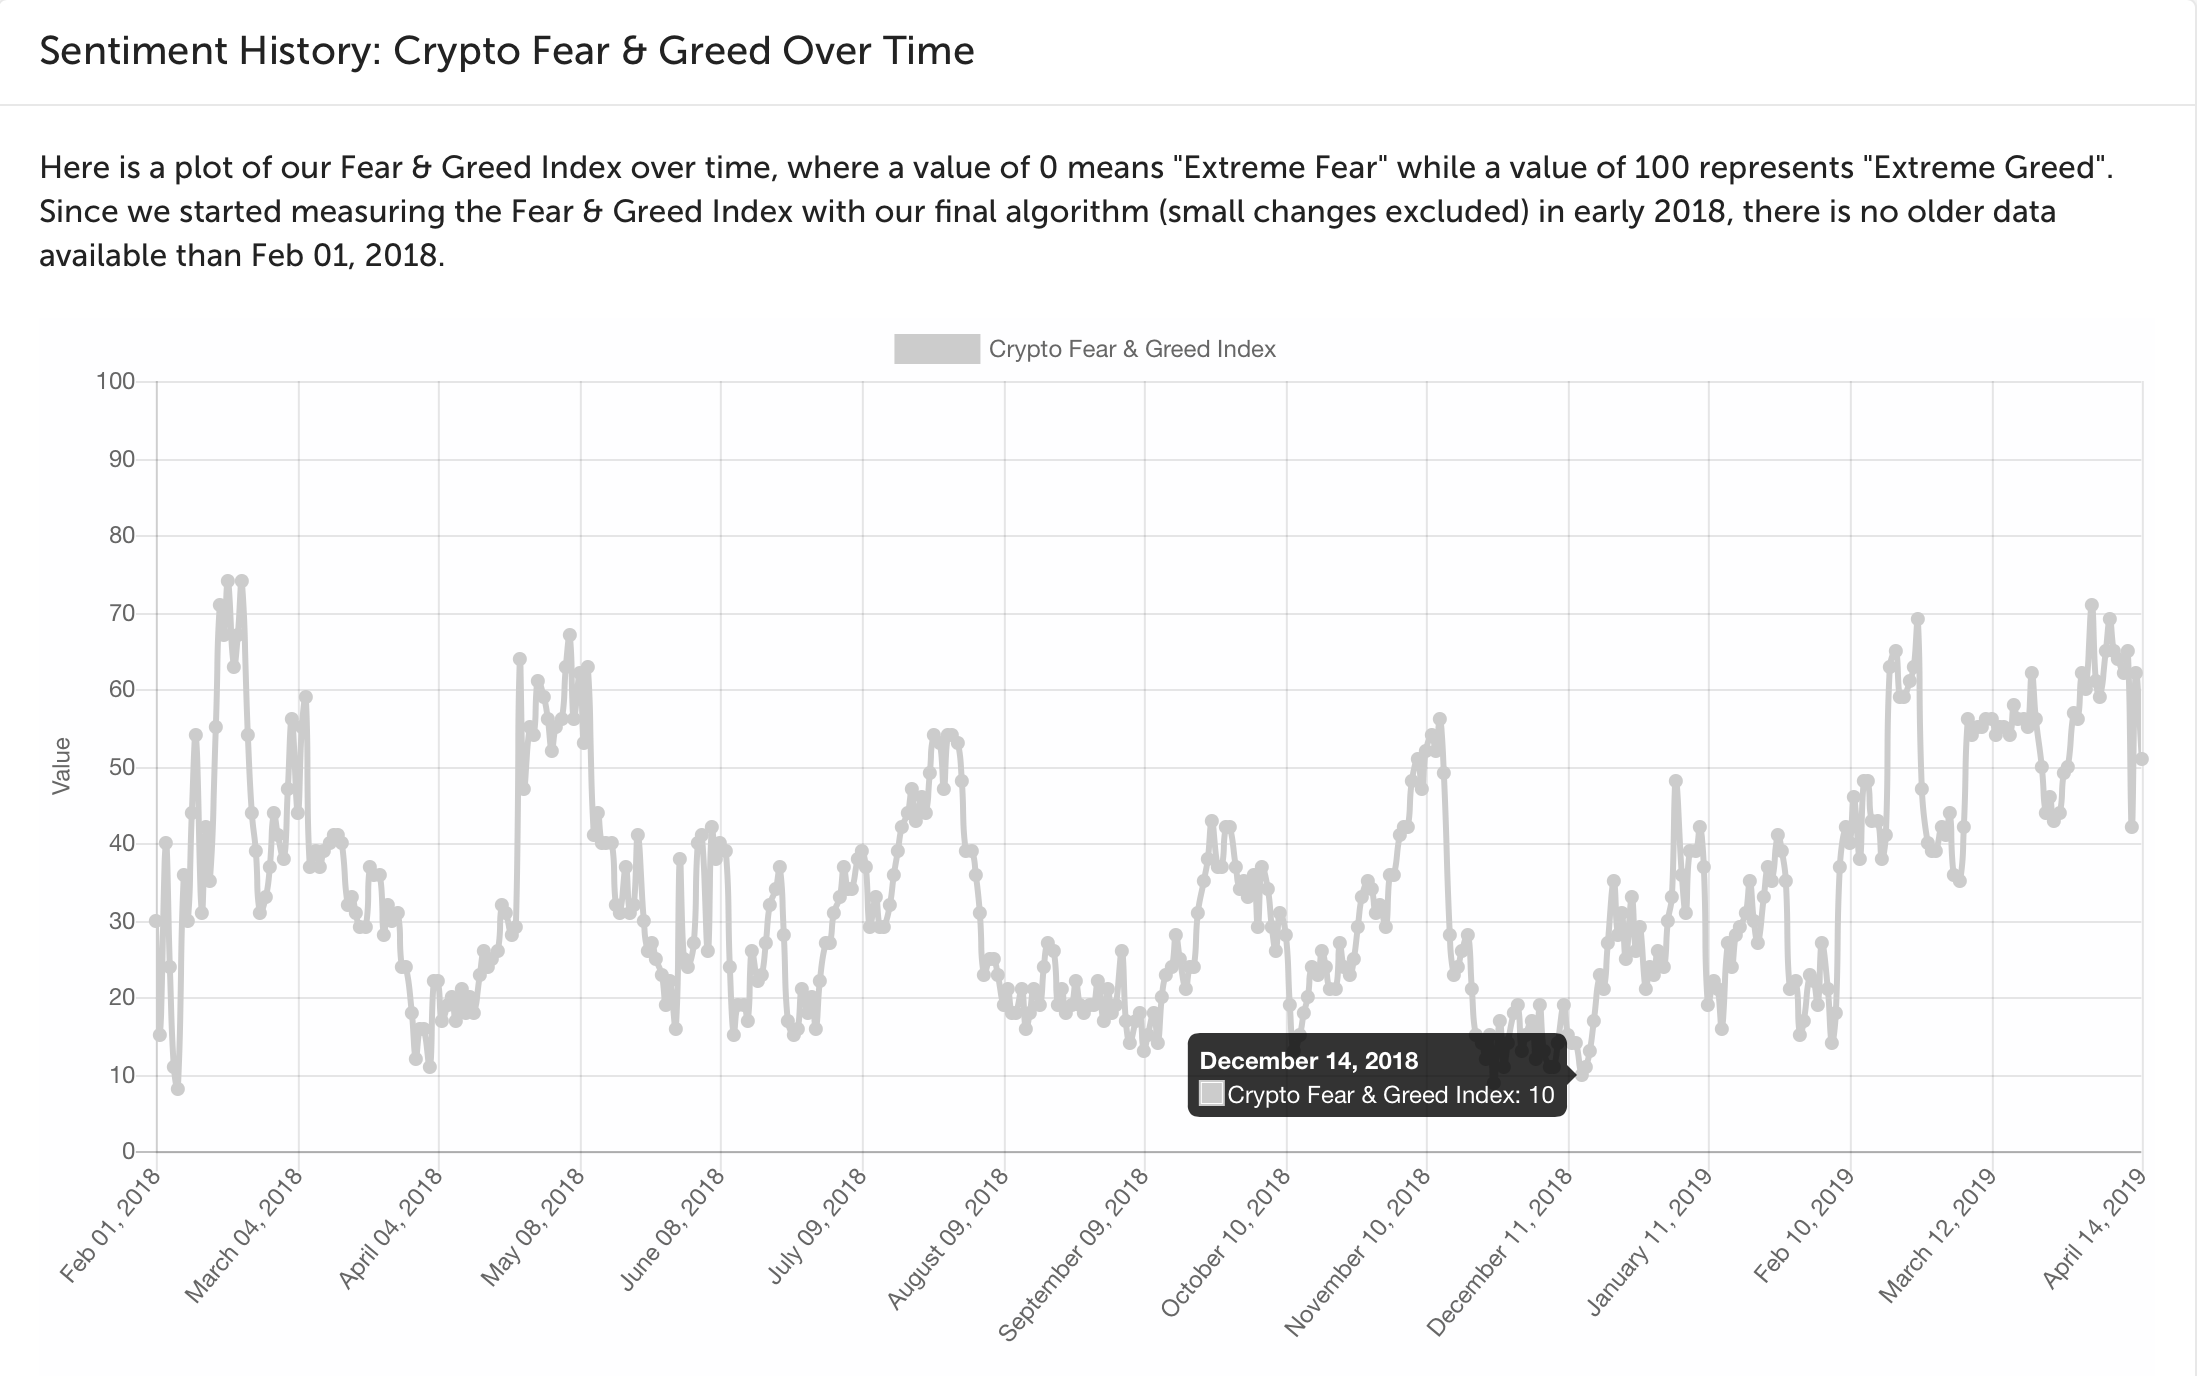 Bitcoin fear and greed index chart